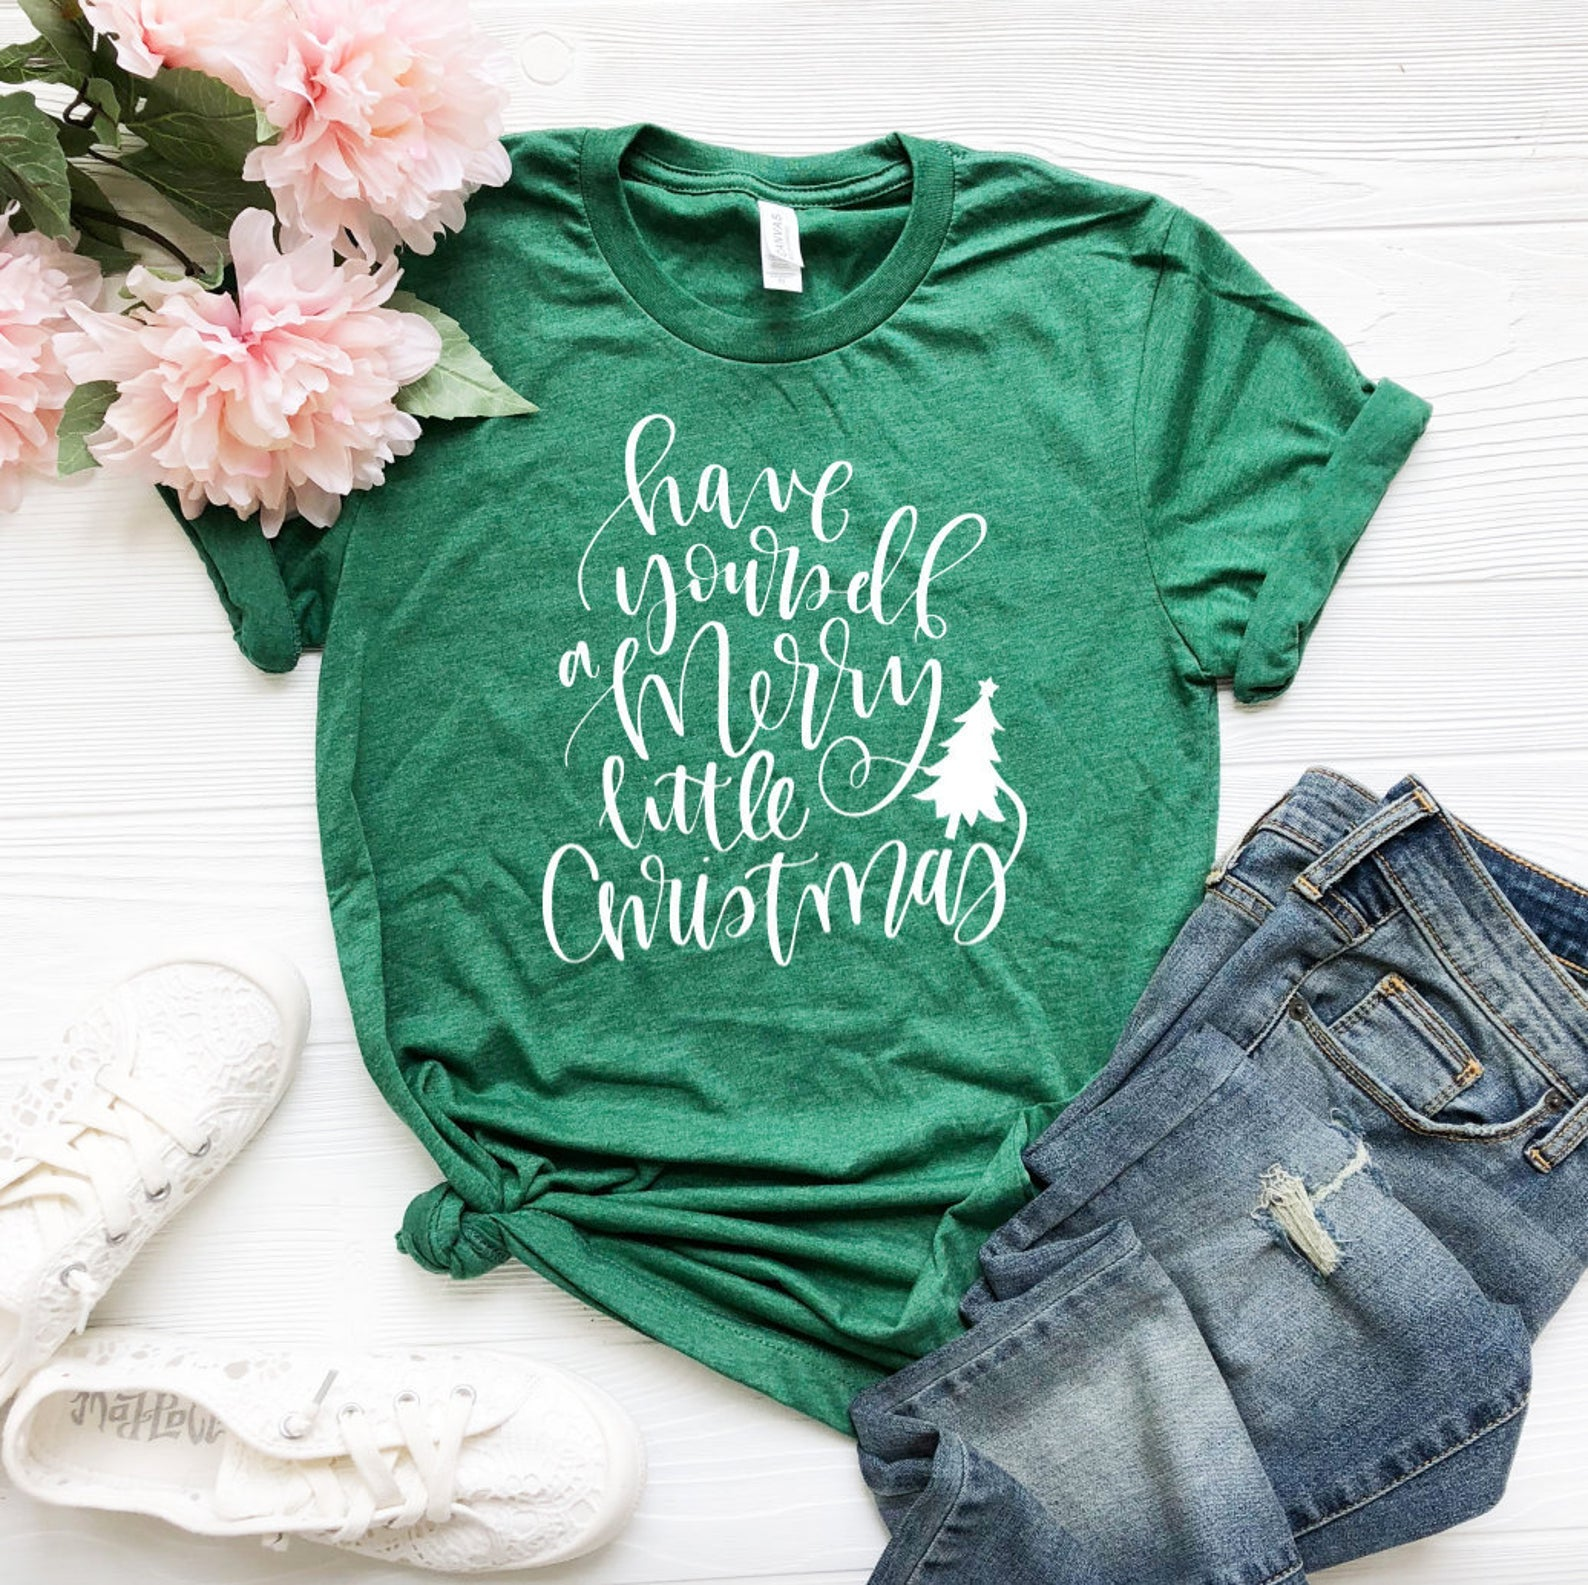 Merry Little Christmas T-shirt - Christmas T-Shirts - Cute Christmas T-Shirt - Custom Green Shirts - Green Shirts